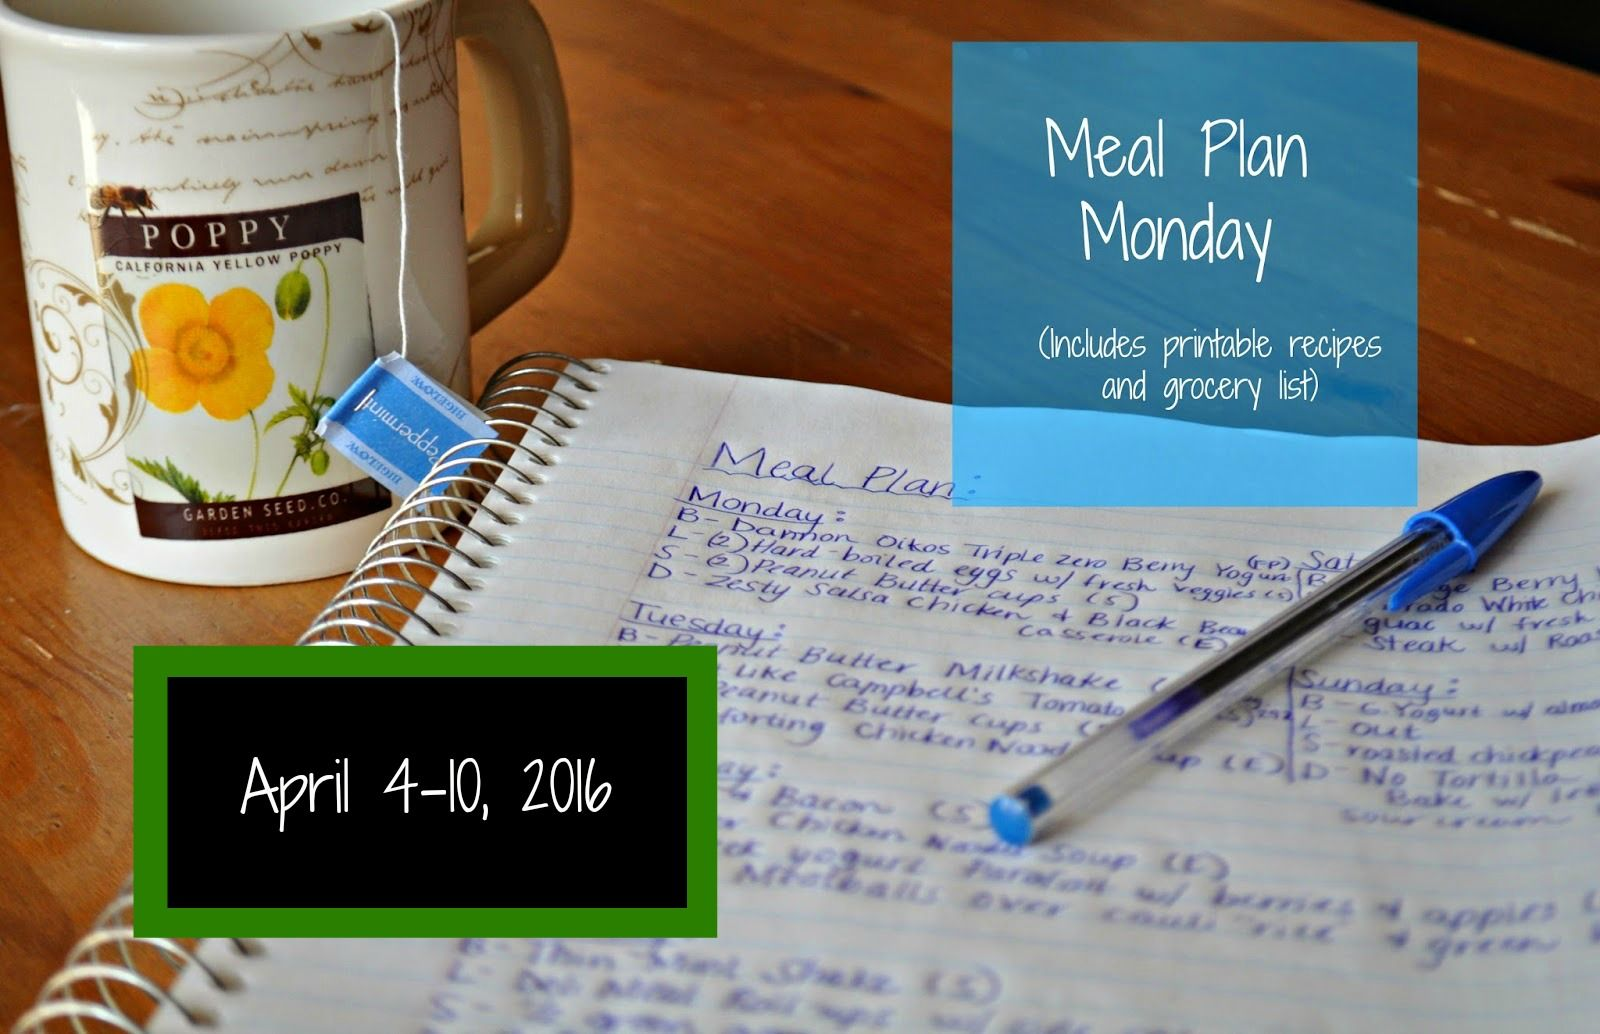 Darcie's Dishes: Meal Plan Monday: 4/4-4/10/16